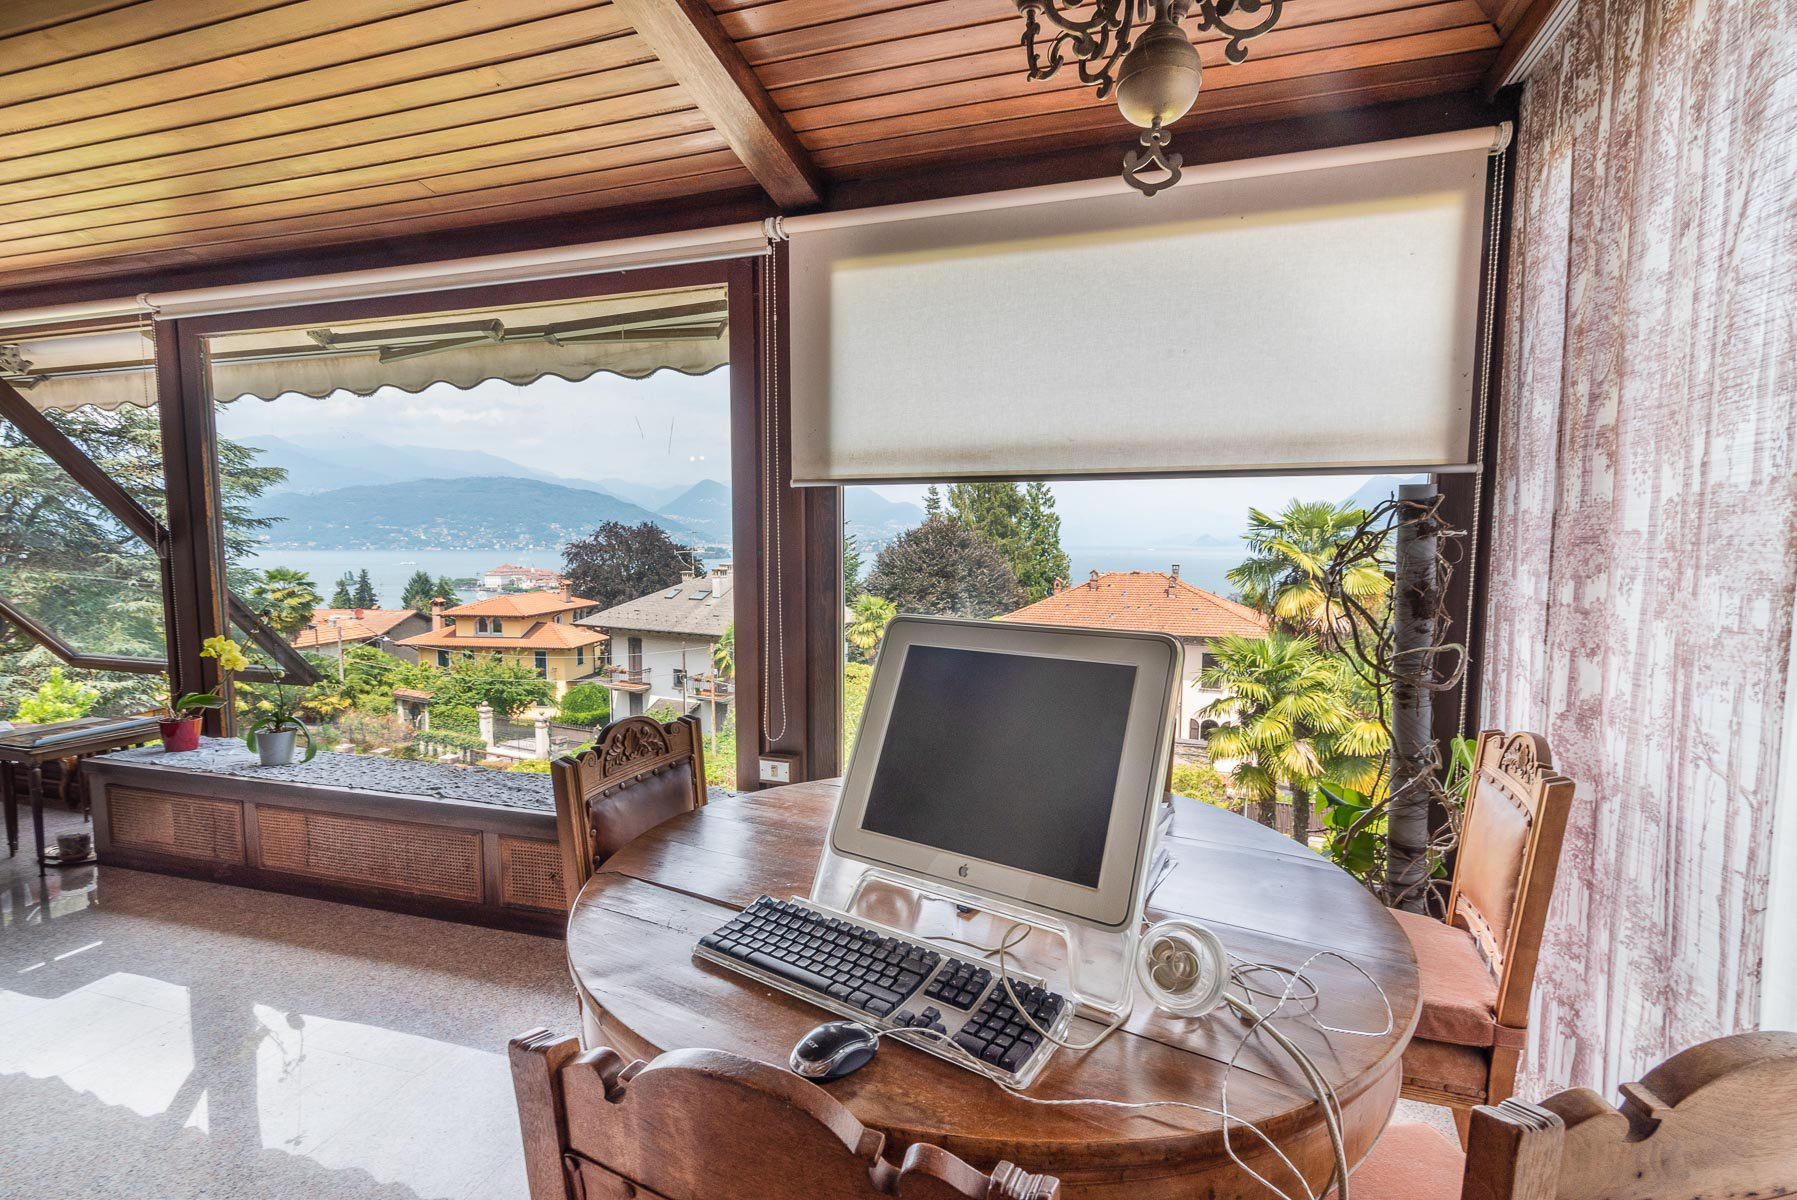 Elegant villa with garden for sale in Stresa - study with a view